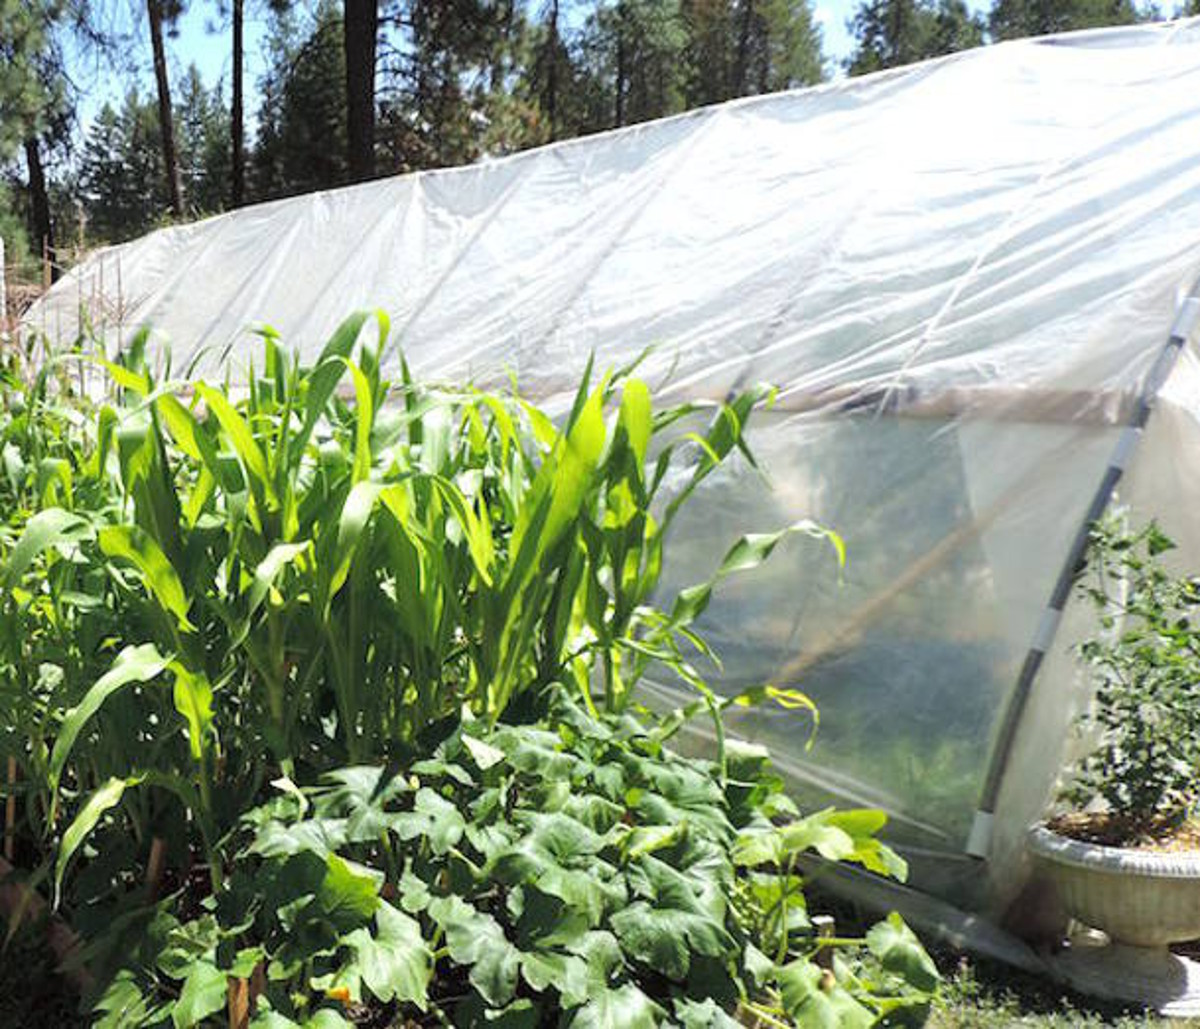 hoop house type greenhouse